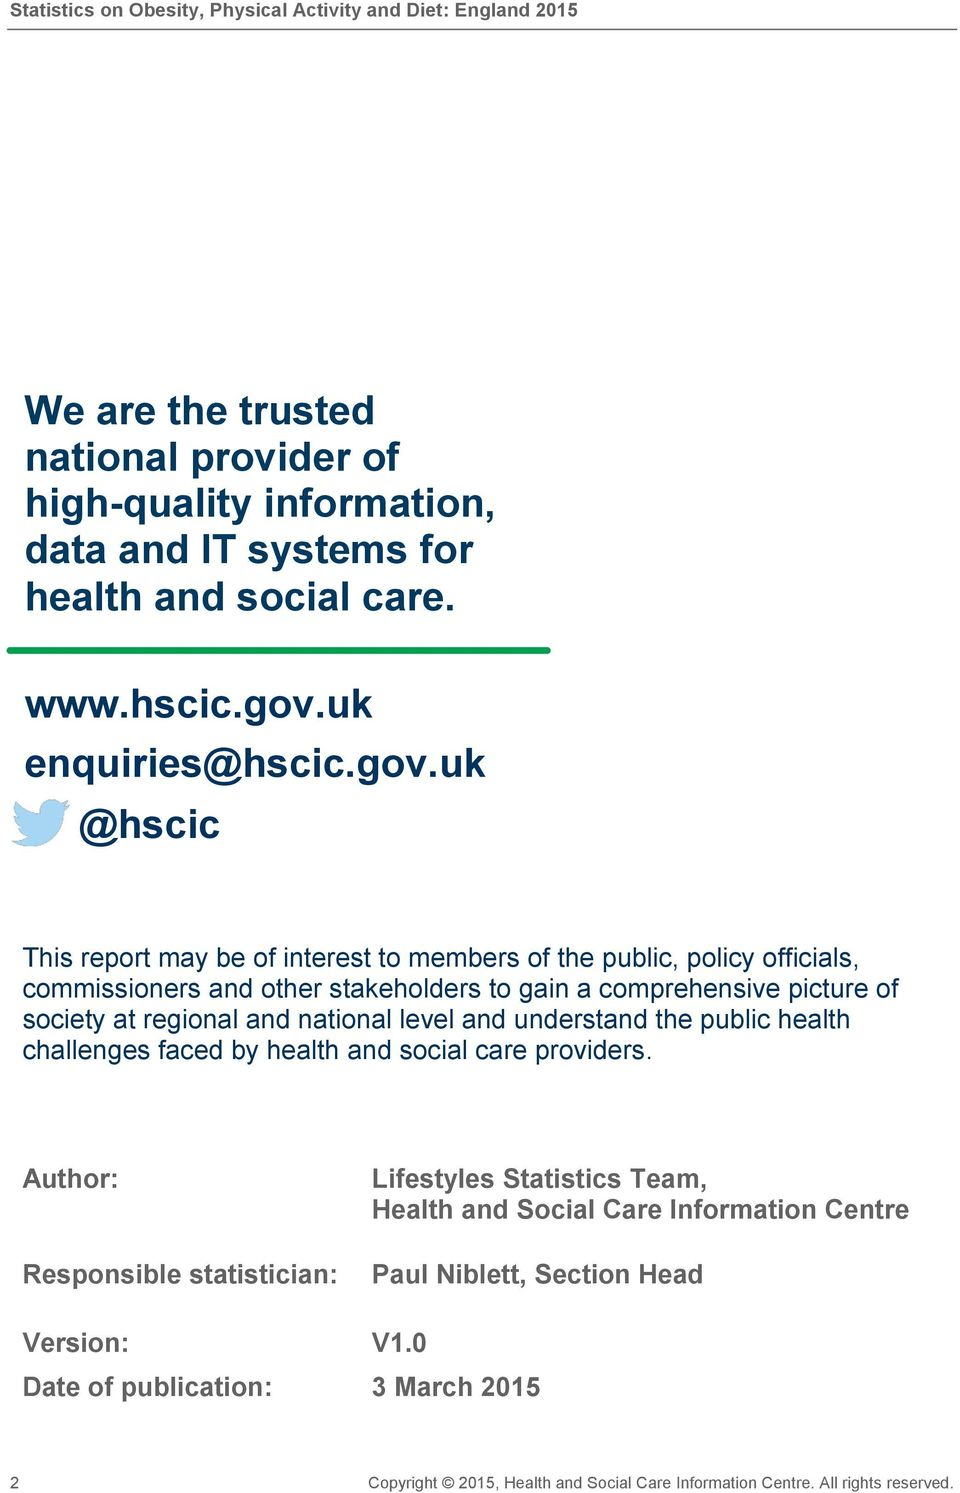 Statistics on Obesity, Physical Activity and Diet  England PDF